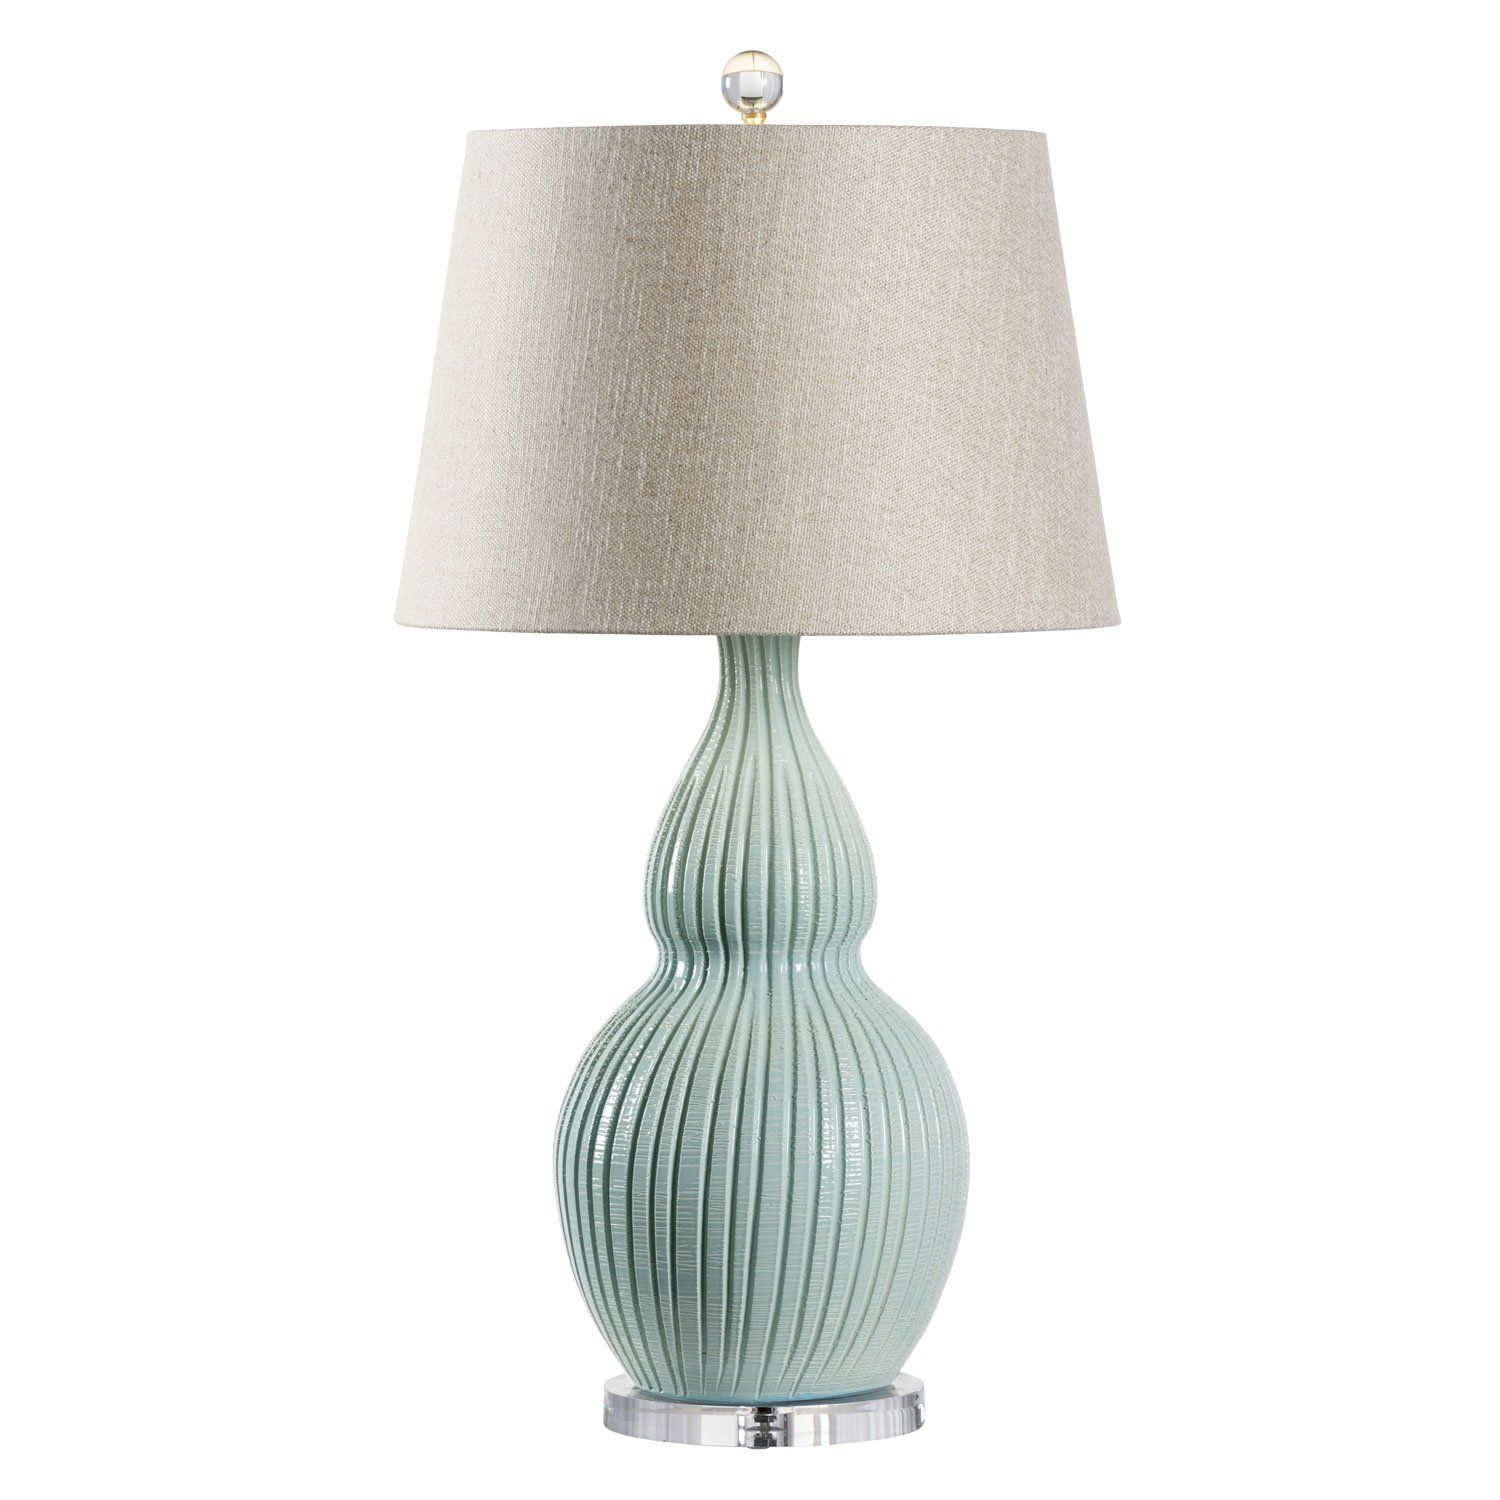 Wildwood ventura table lamp paynesgray nightstand wall sconces floor lamp light fixtures